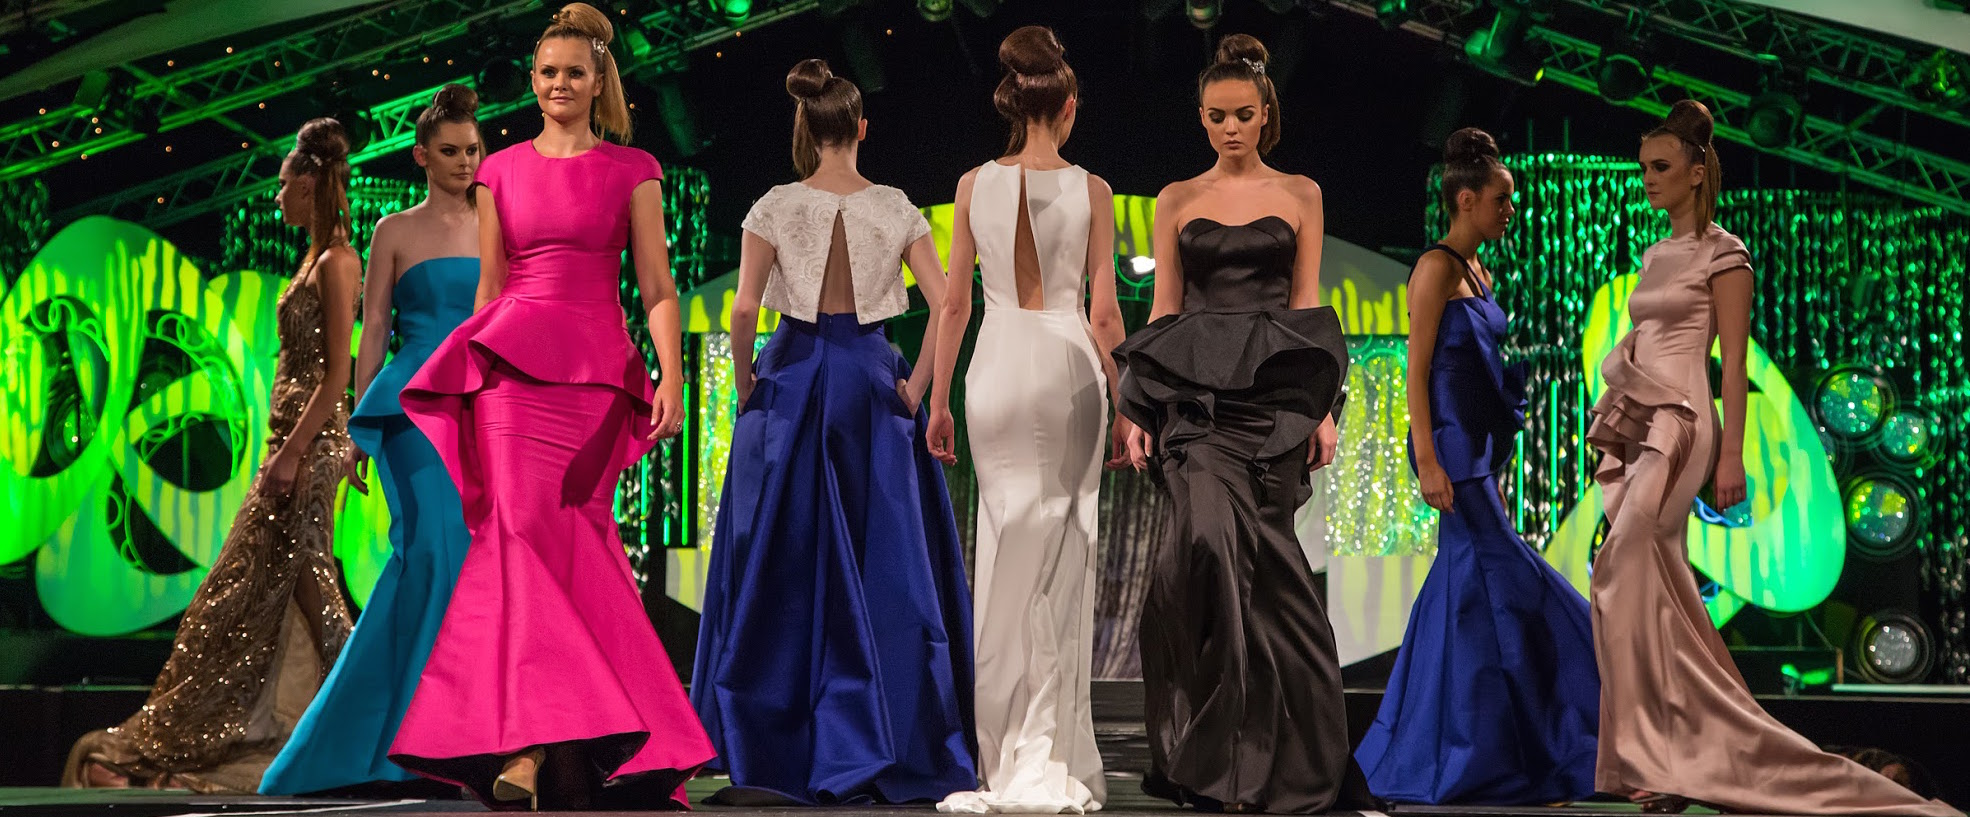 dolf_patijn_rose_of_tralee_fashion_16082015_0476-copy1